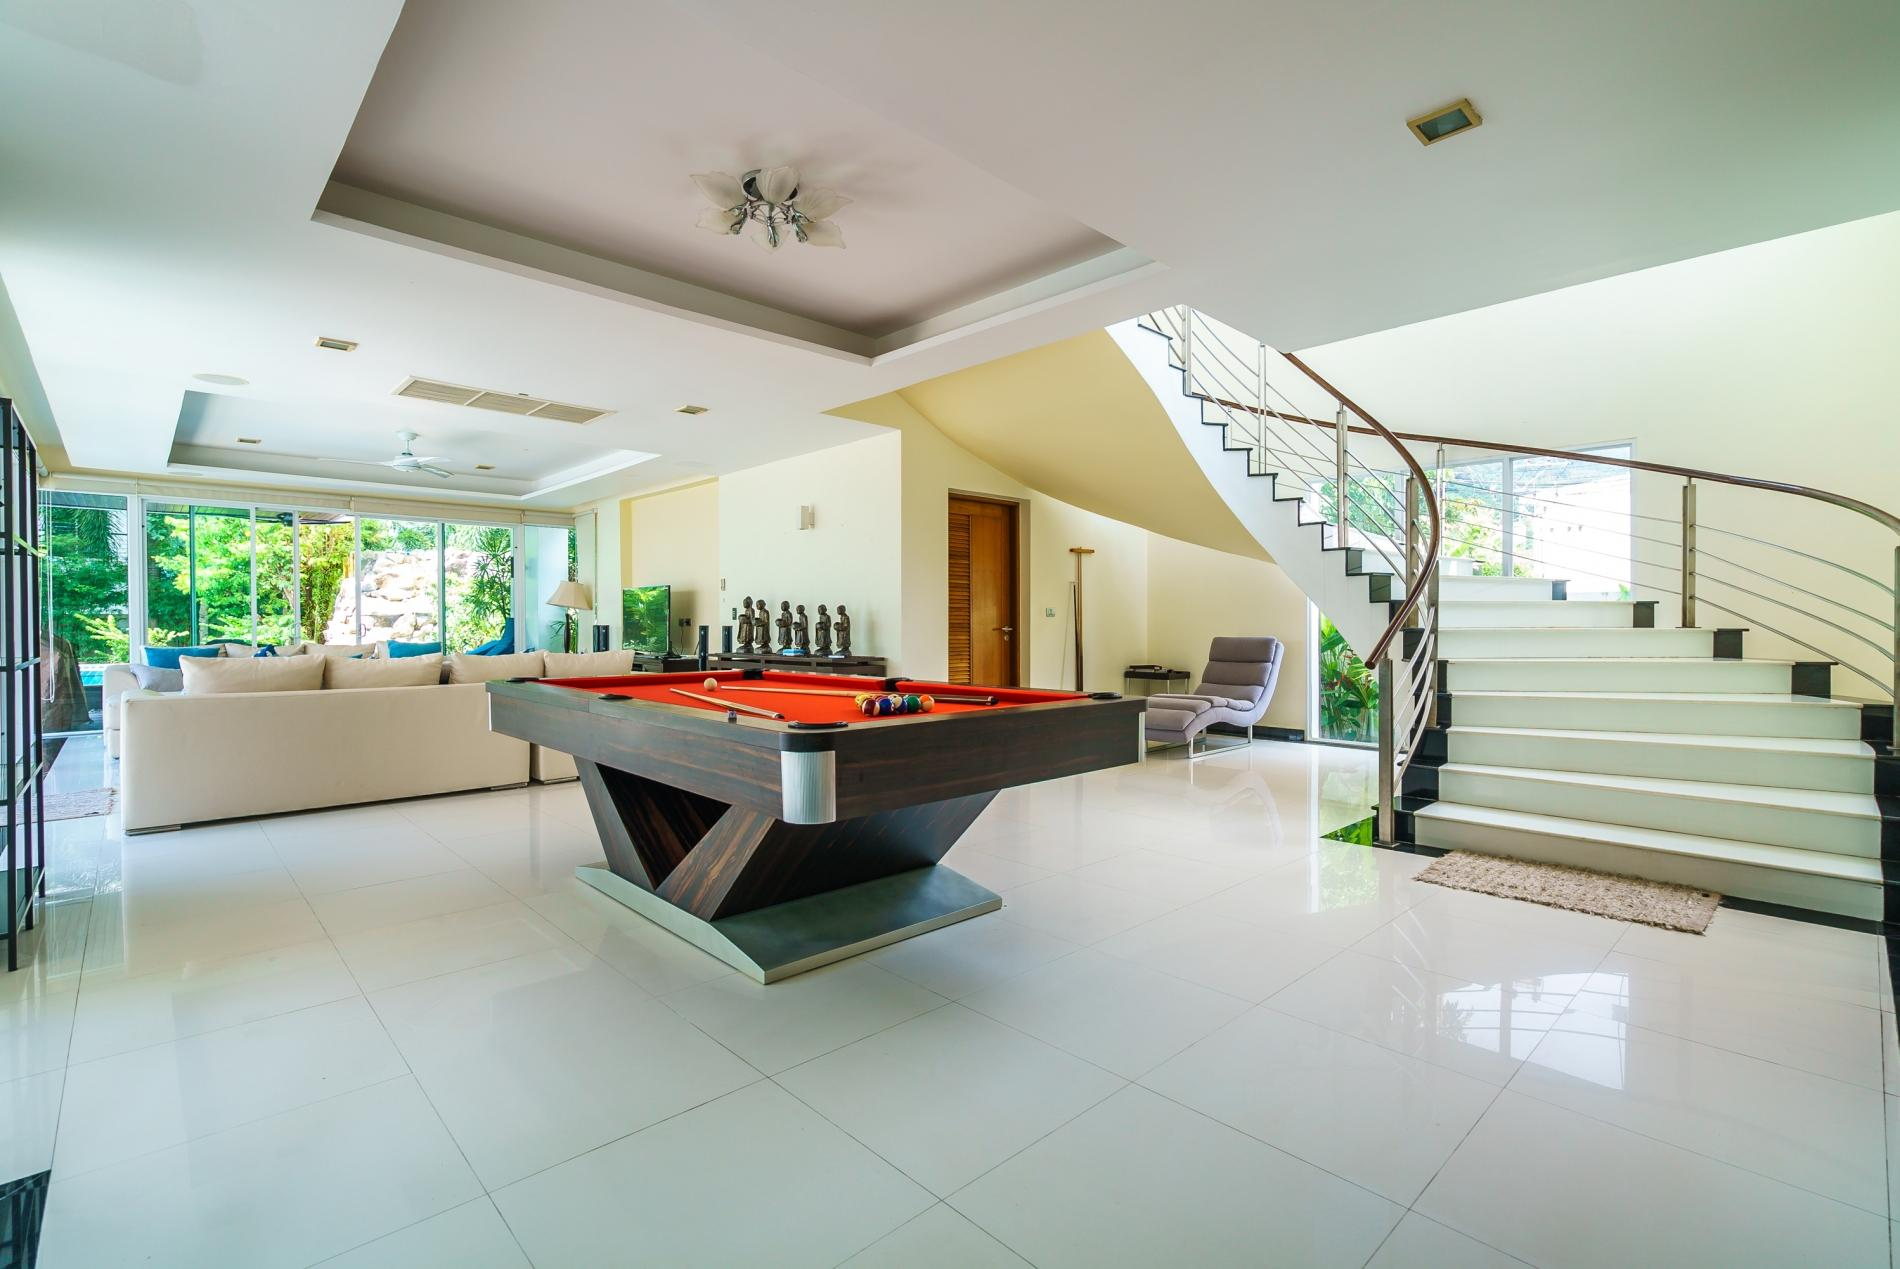 Apartment Kyerra Villa -  Giant private pool in Kamala  pool table  ping pong table  photo 20179559